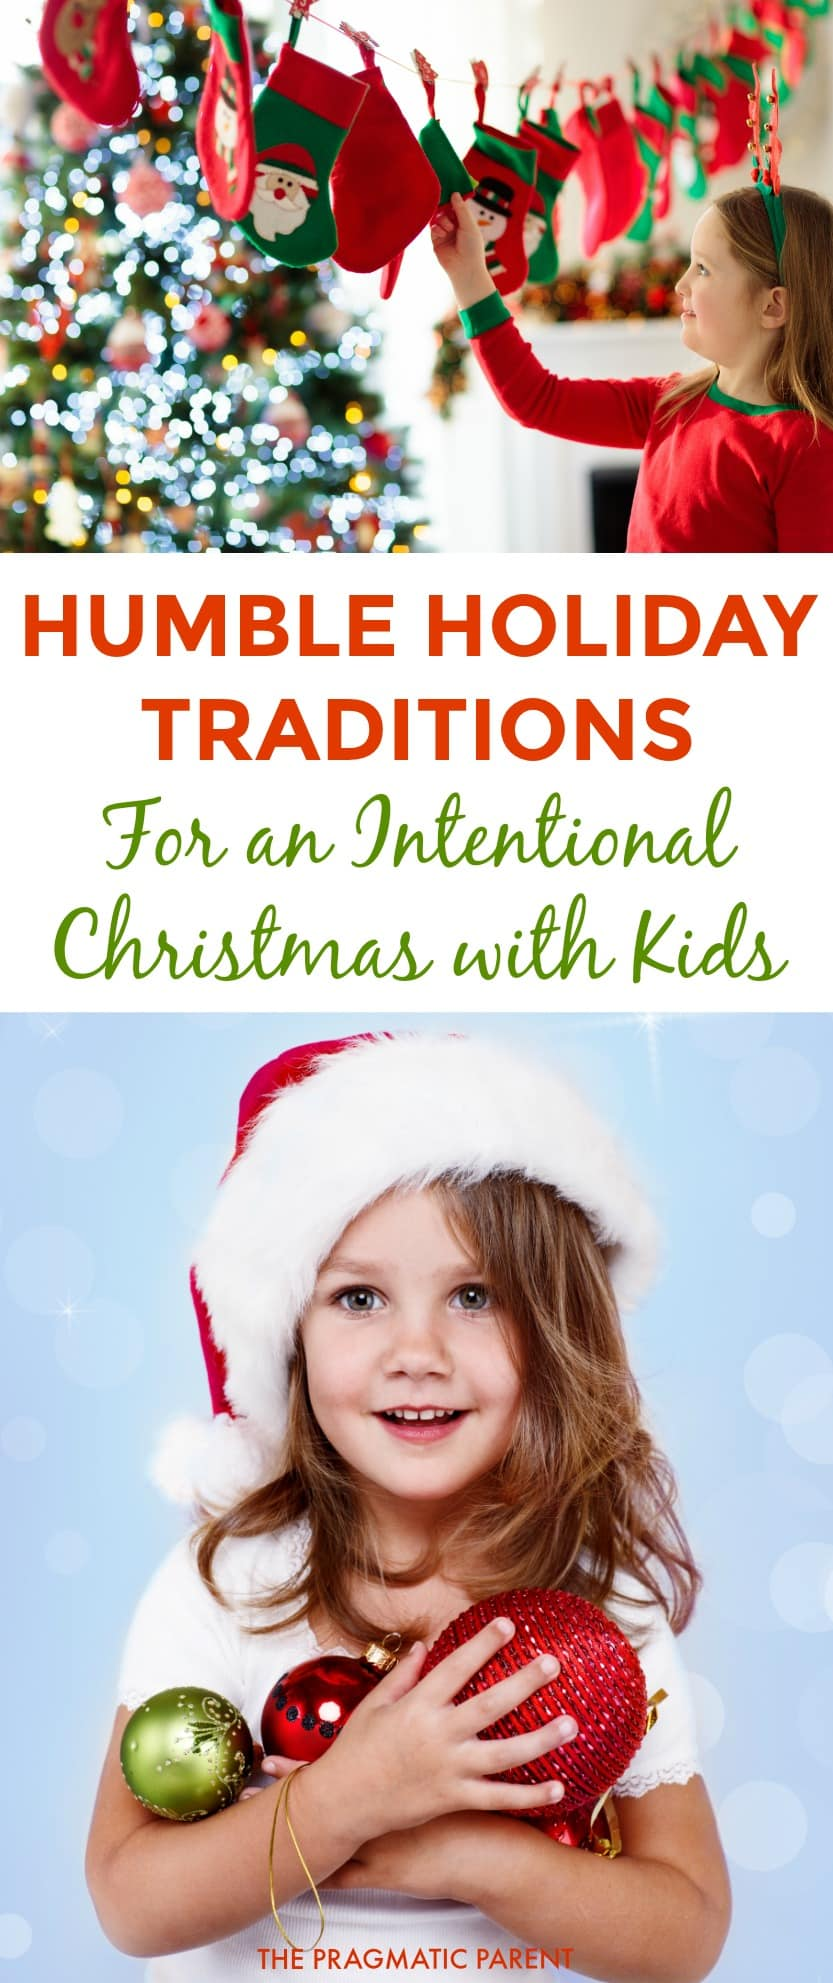 Whether you've had it with overspending and too many toys at Christmas, or want to teach your kids about empathy and gratitude during the holidays, these humble holiday traditions of an Intentional Christmas are guaranteed to create a magical experience. #intentionalchristmas #teachkidsgratitude #familytraditions #humbleholidays #familychristmastraditionsforkids #christmastraditions